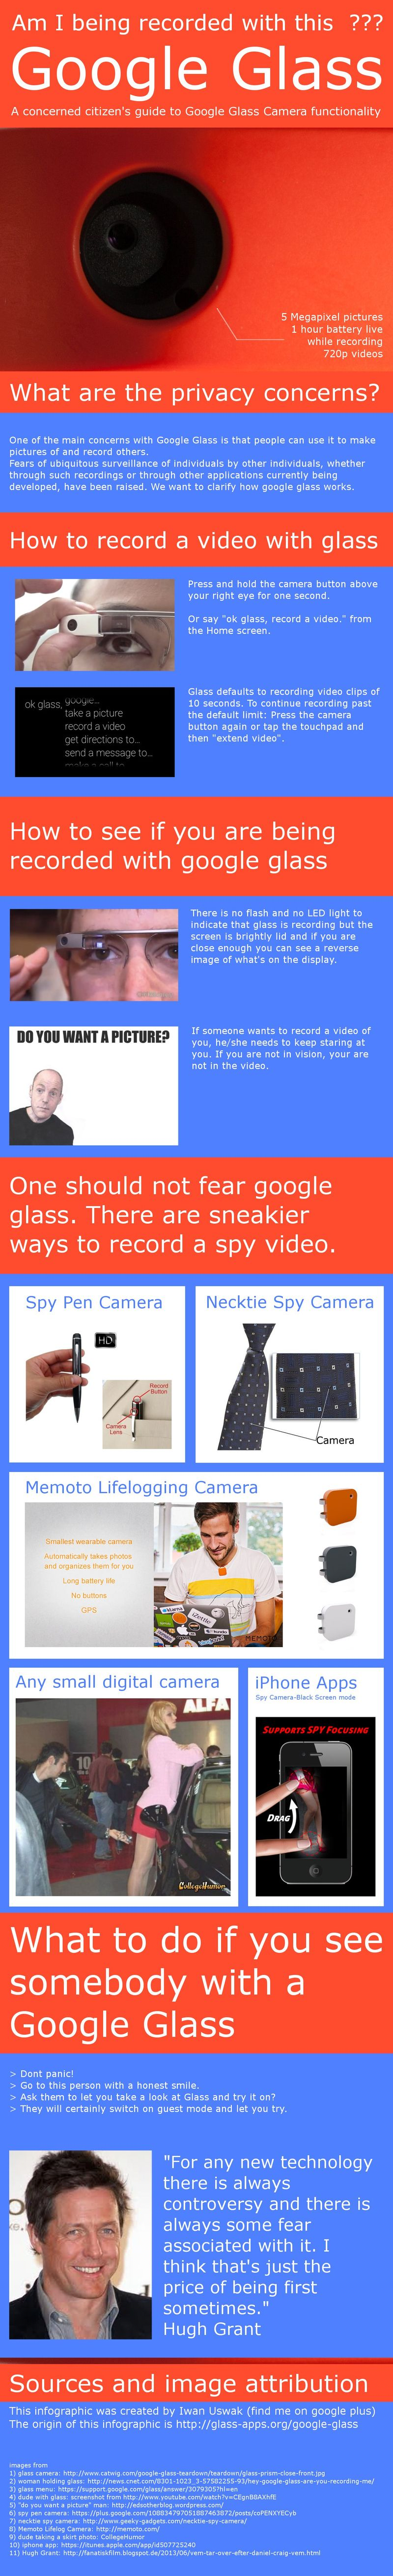 Google Glass -- A Concerned Citizens Guide To Google Glass and Camera Functionality